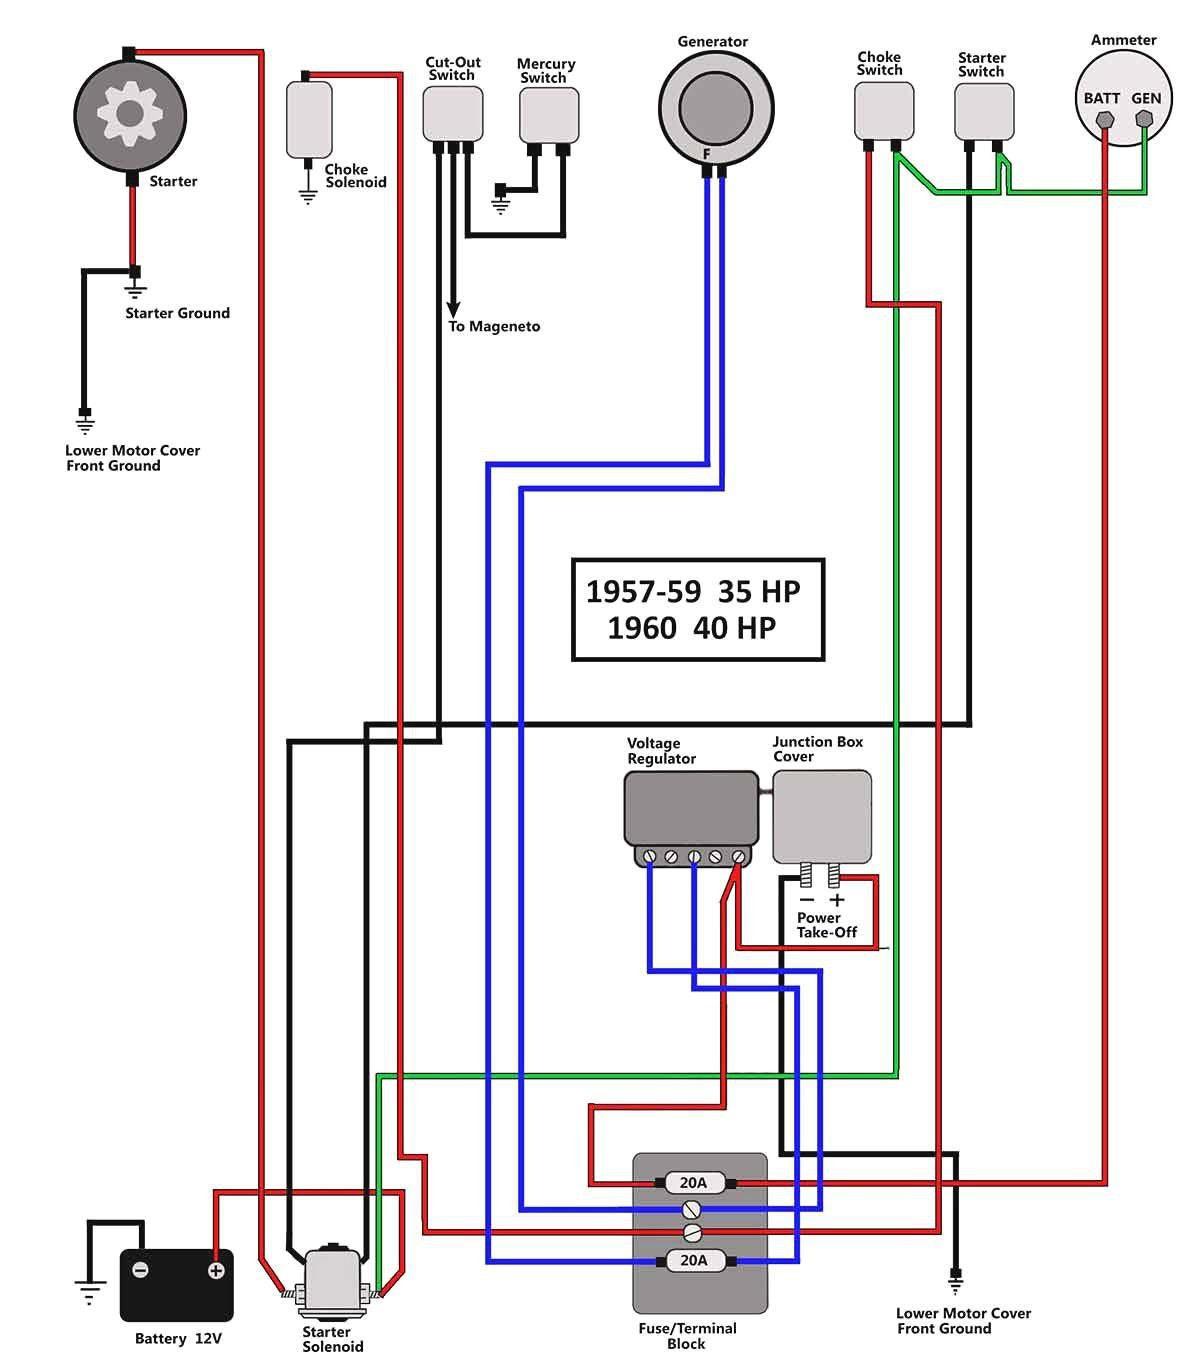 40 Hp Mercury Outboard Wiring Diagram Moreover Johnson Outboard Johnson  Outboard Wiring Diagram Pdf